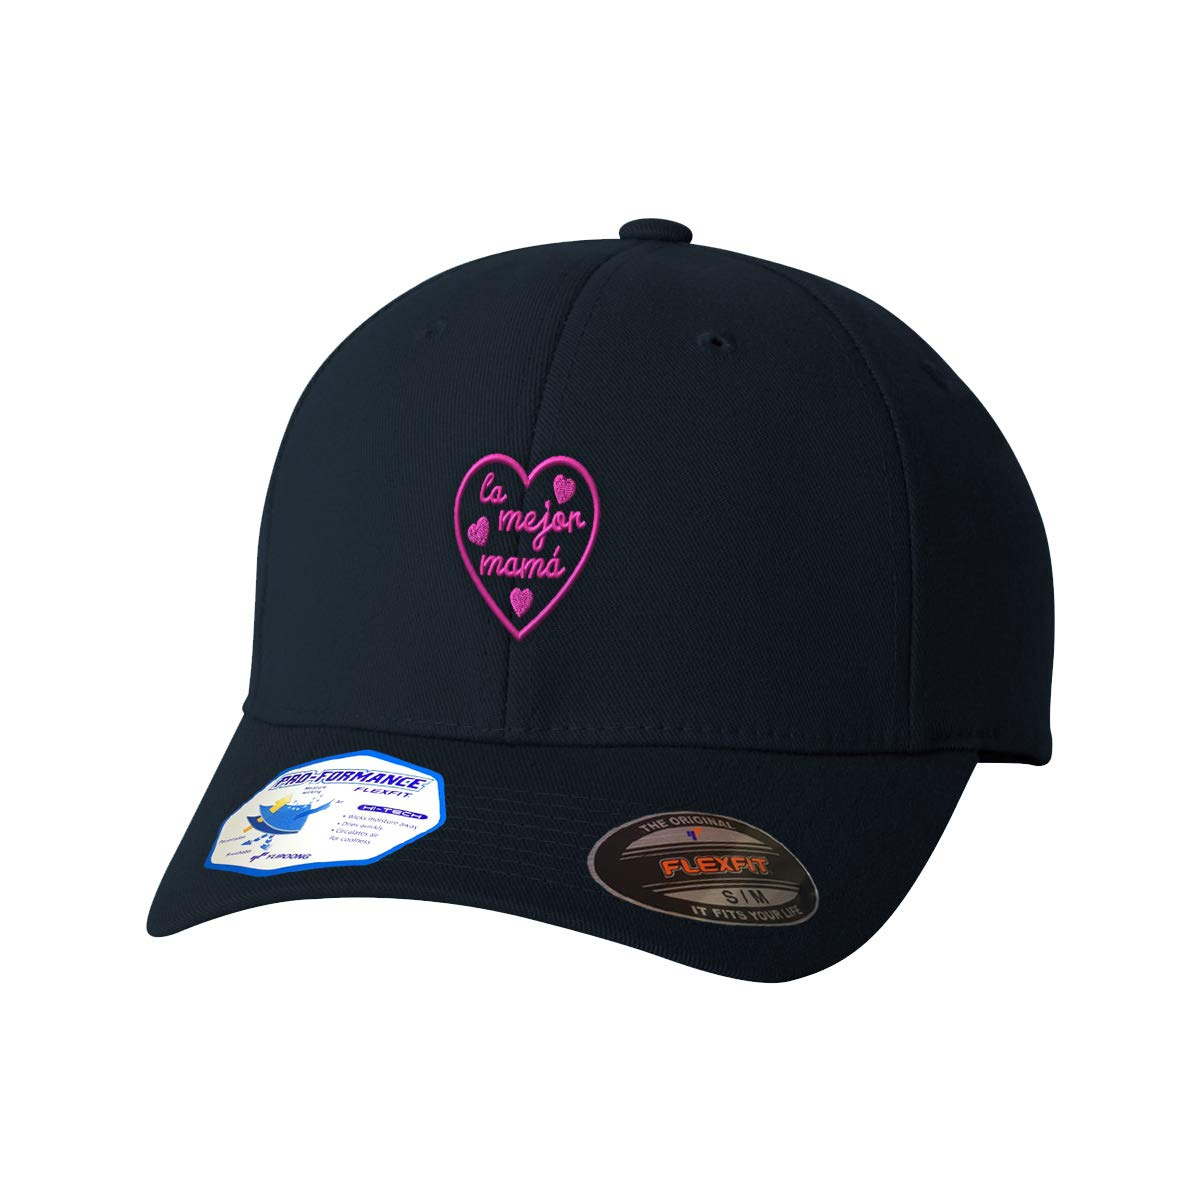 Custom Flexfit Hats for Men /& Women La Mejor Mama Heart Pink Embroidery